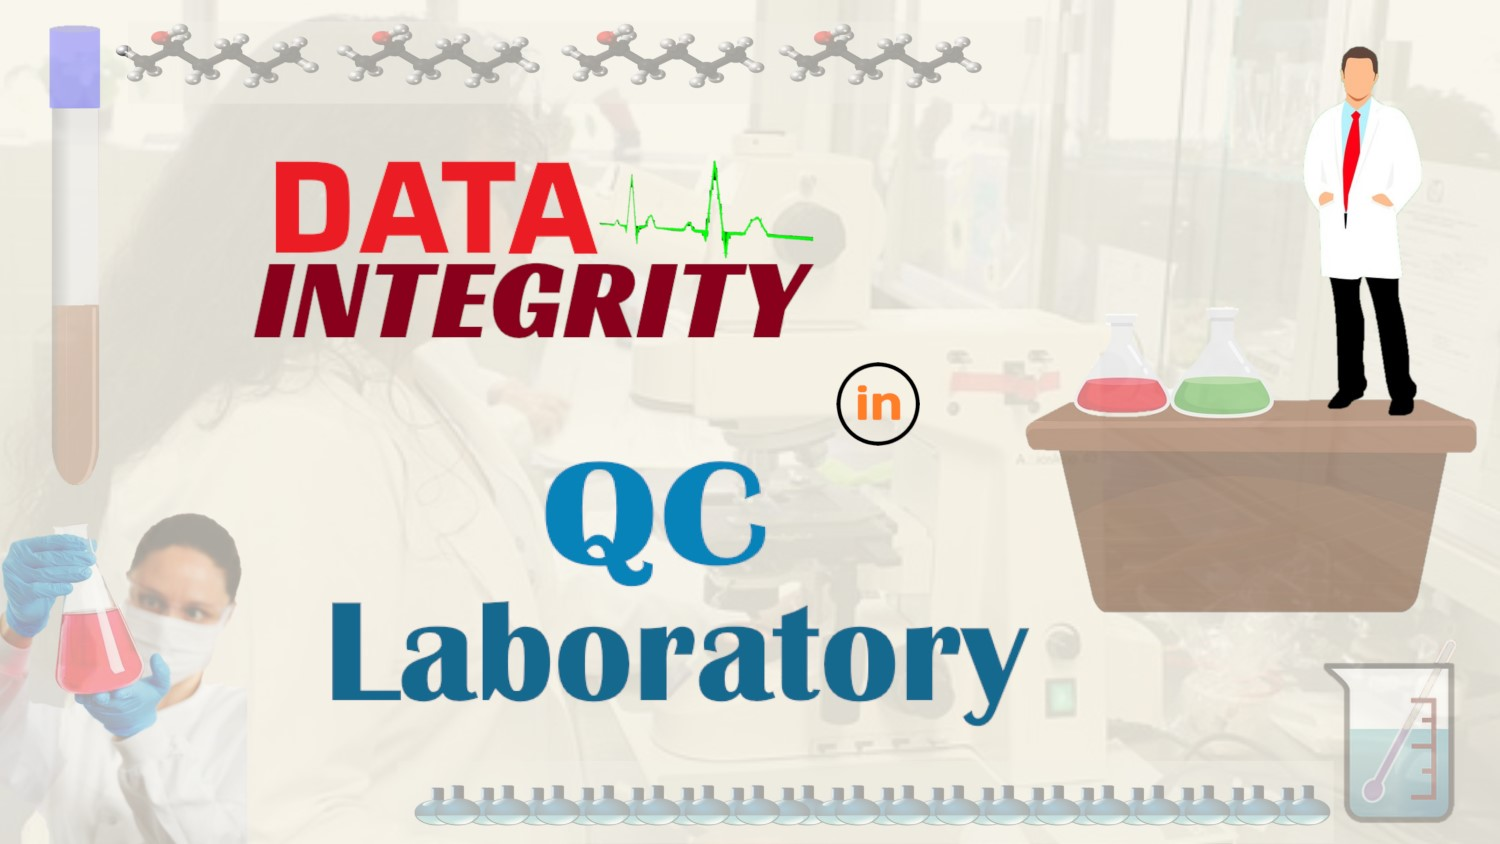 Data-Integrity-in-QC